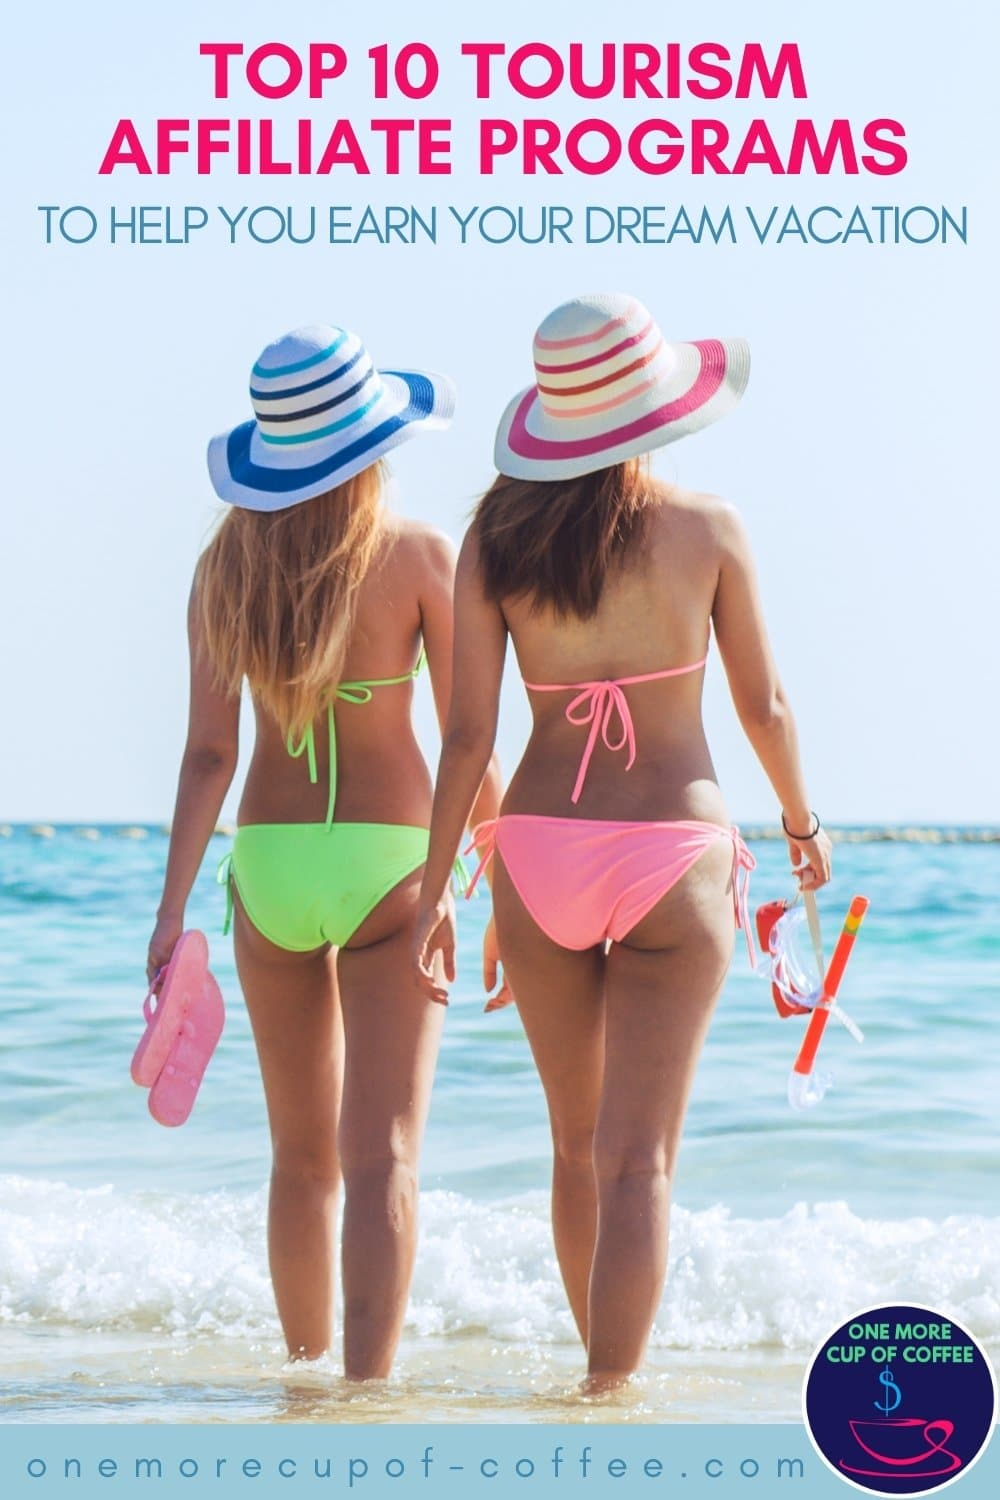 """two women by the shore in green and pink bikinis, with blue and pink hats, one carrying pink fit flops, and one carrying orange snorkel; with text at the top """"Top 10 Tourism Affiliate Programs To Help You Earn Your Dream Vacation"""""""